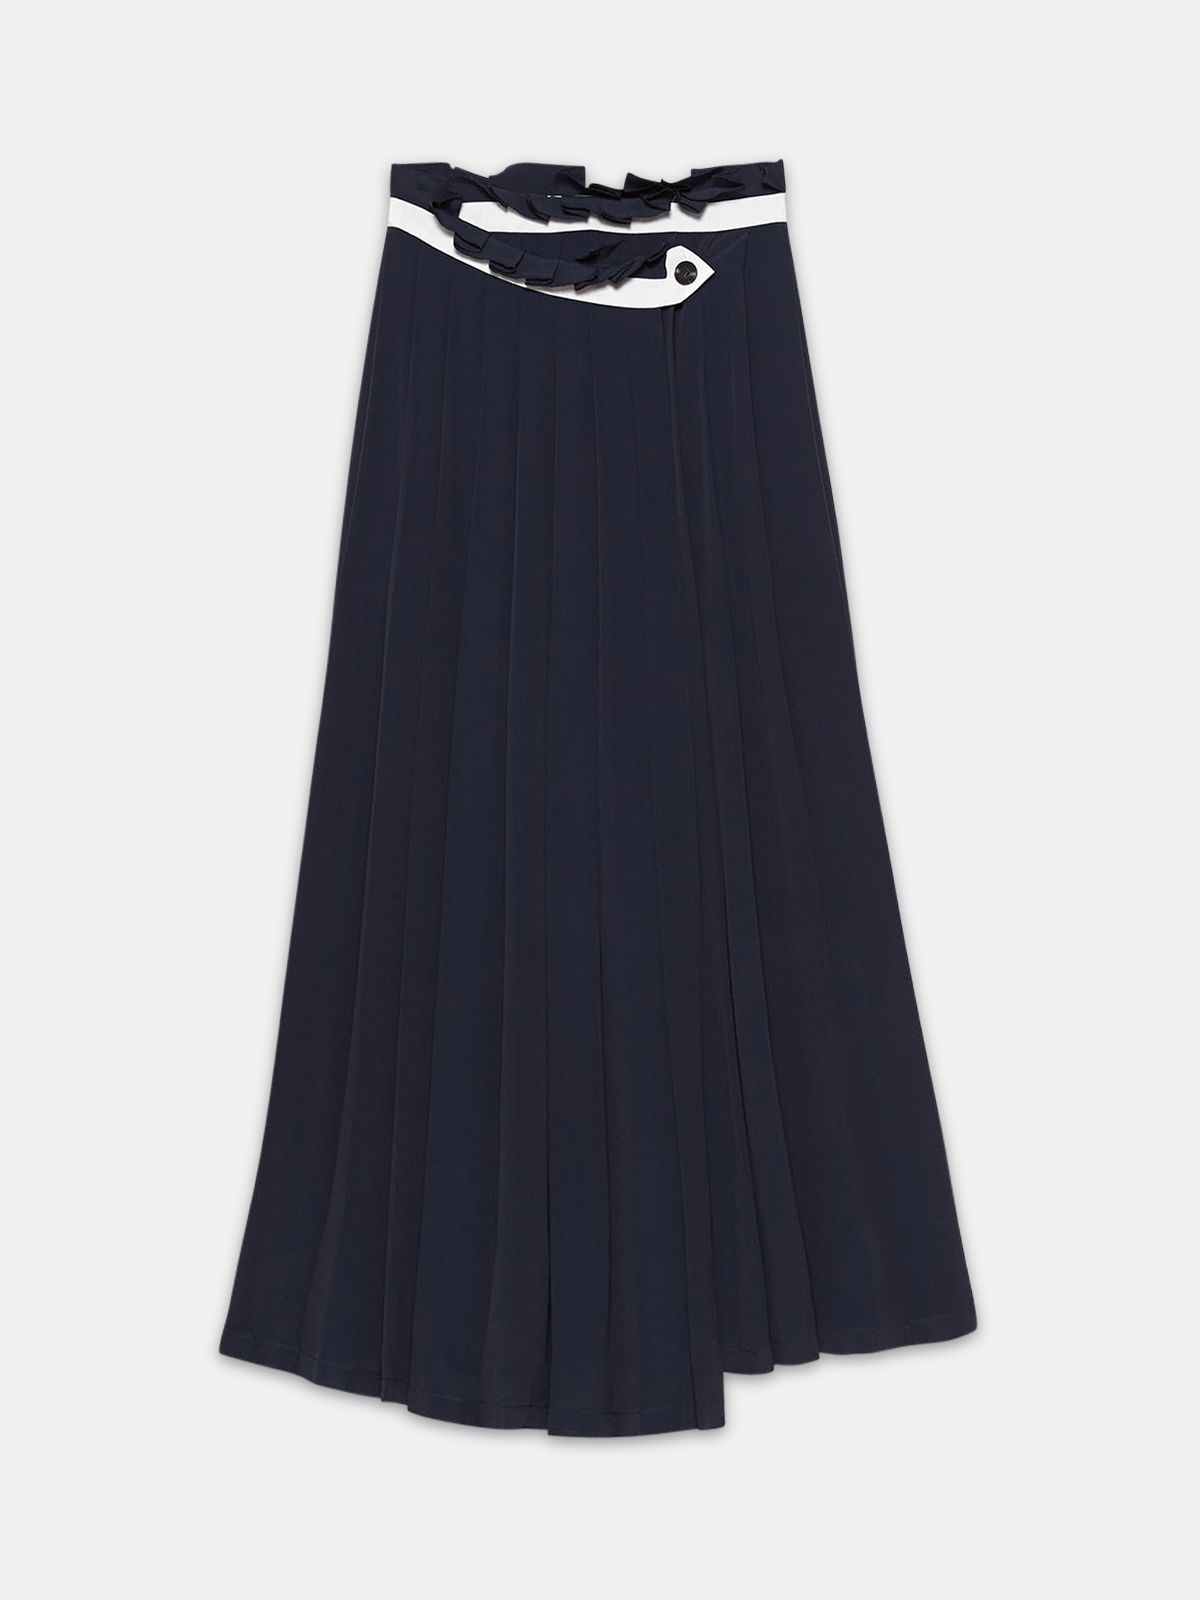 Golden Goose - Hasu colour-block skirt in crepe de chine with sunray pleats in